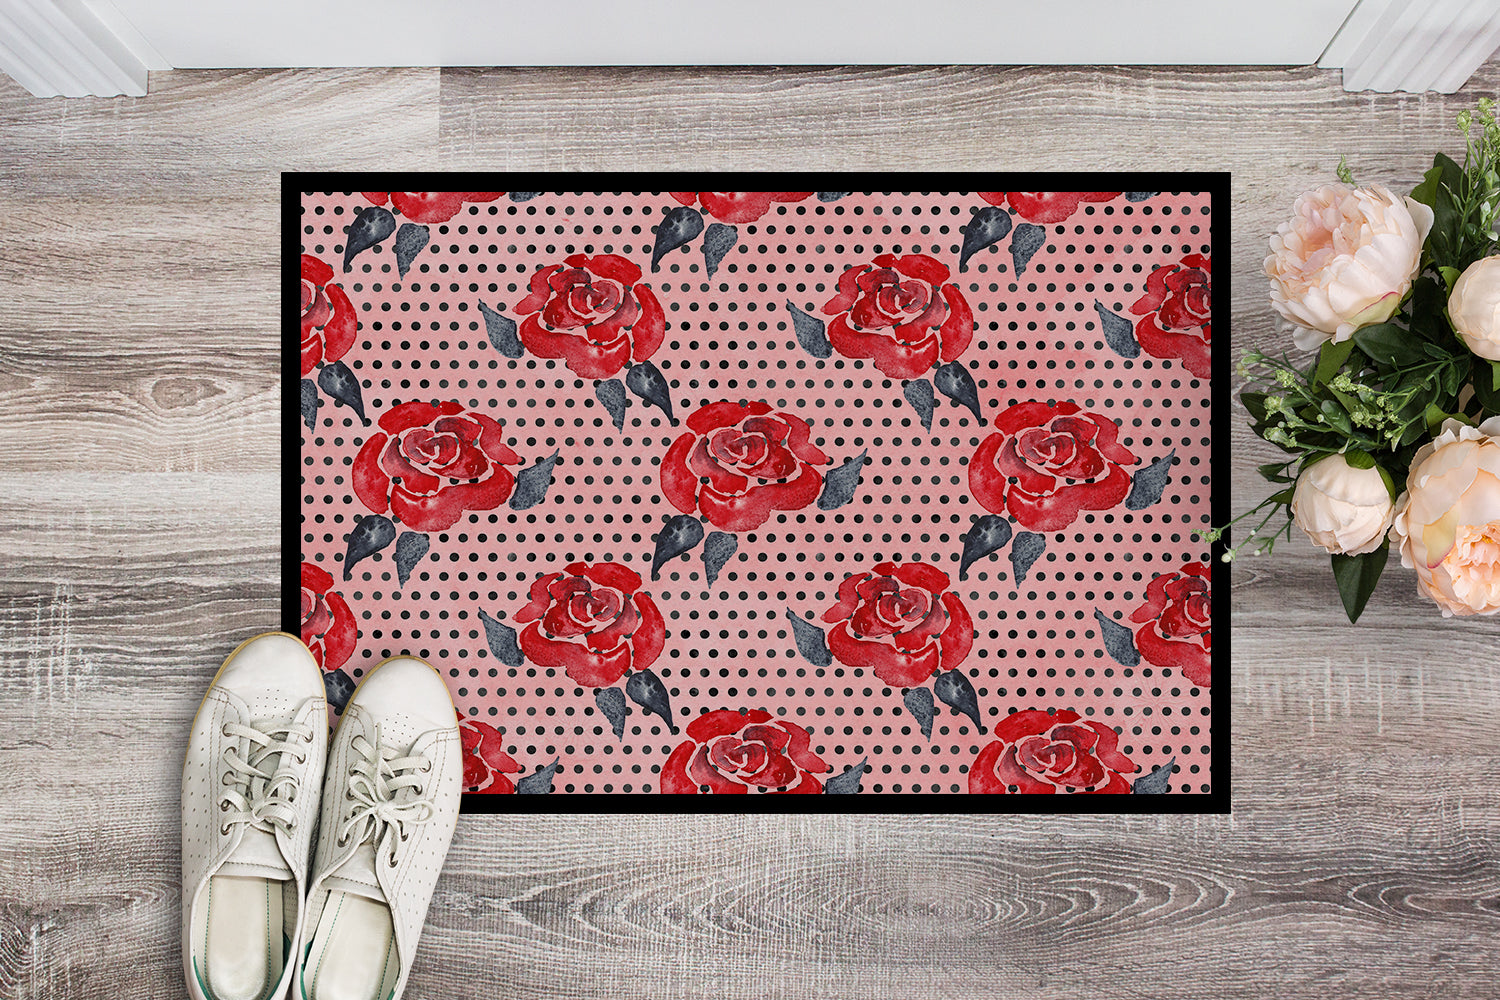 Watercolor Red Roses and Polkadots Indoor or Outdoor Mat 18x27 BB7513MAT by Caroline's Treasures